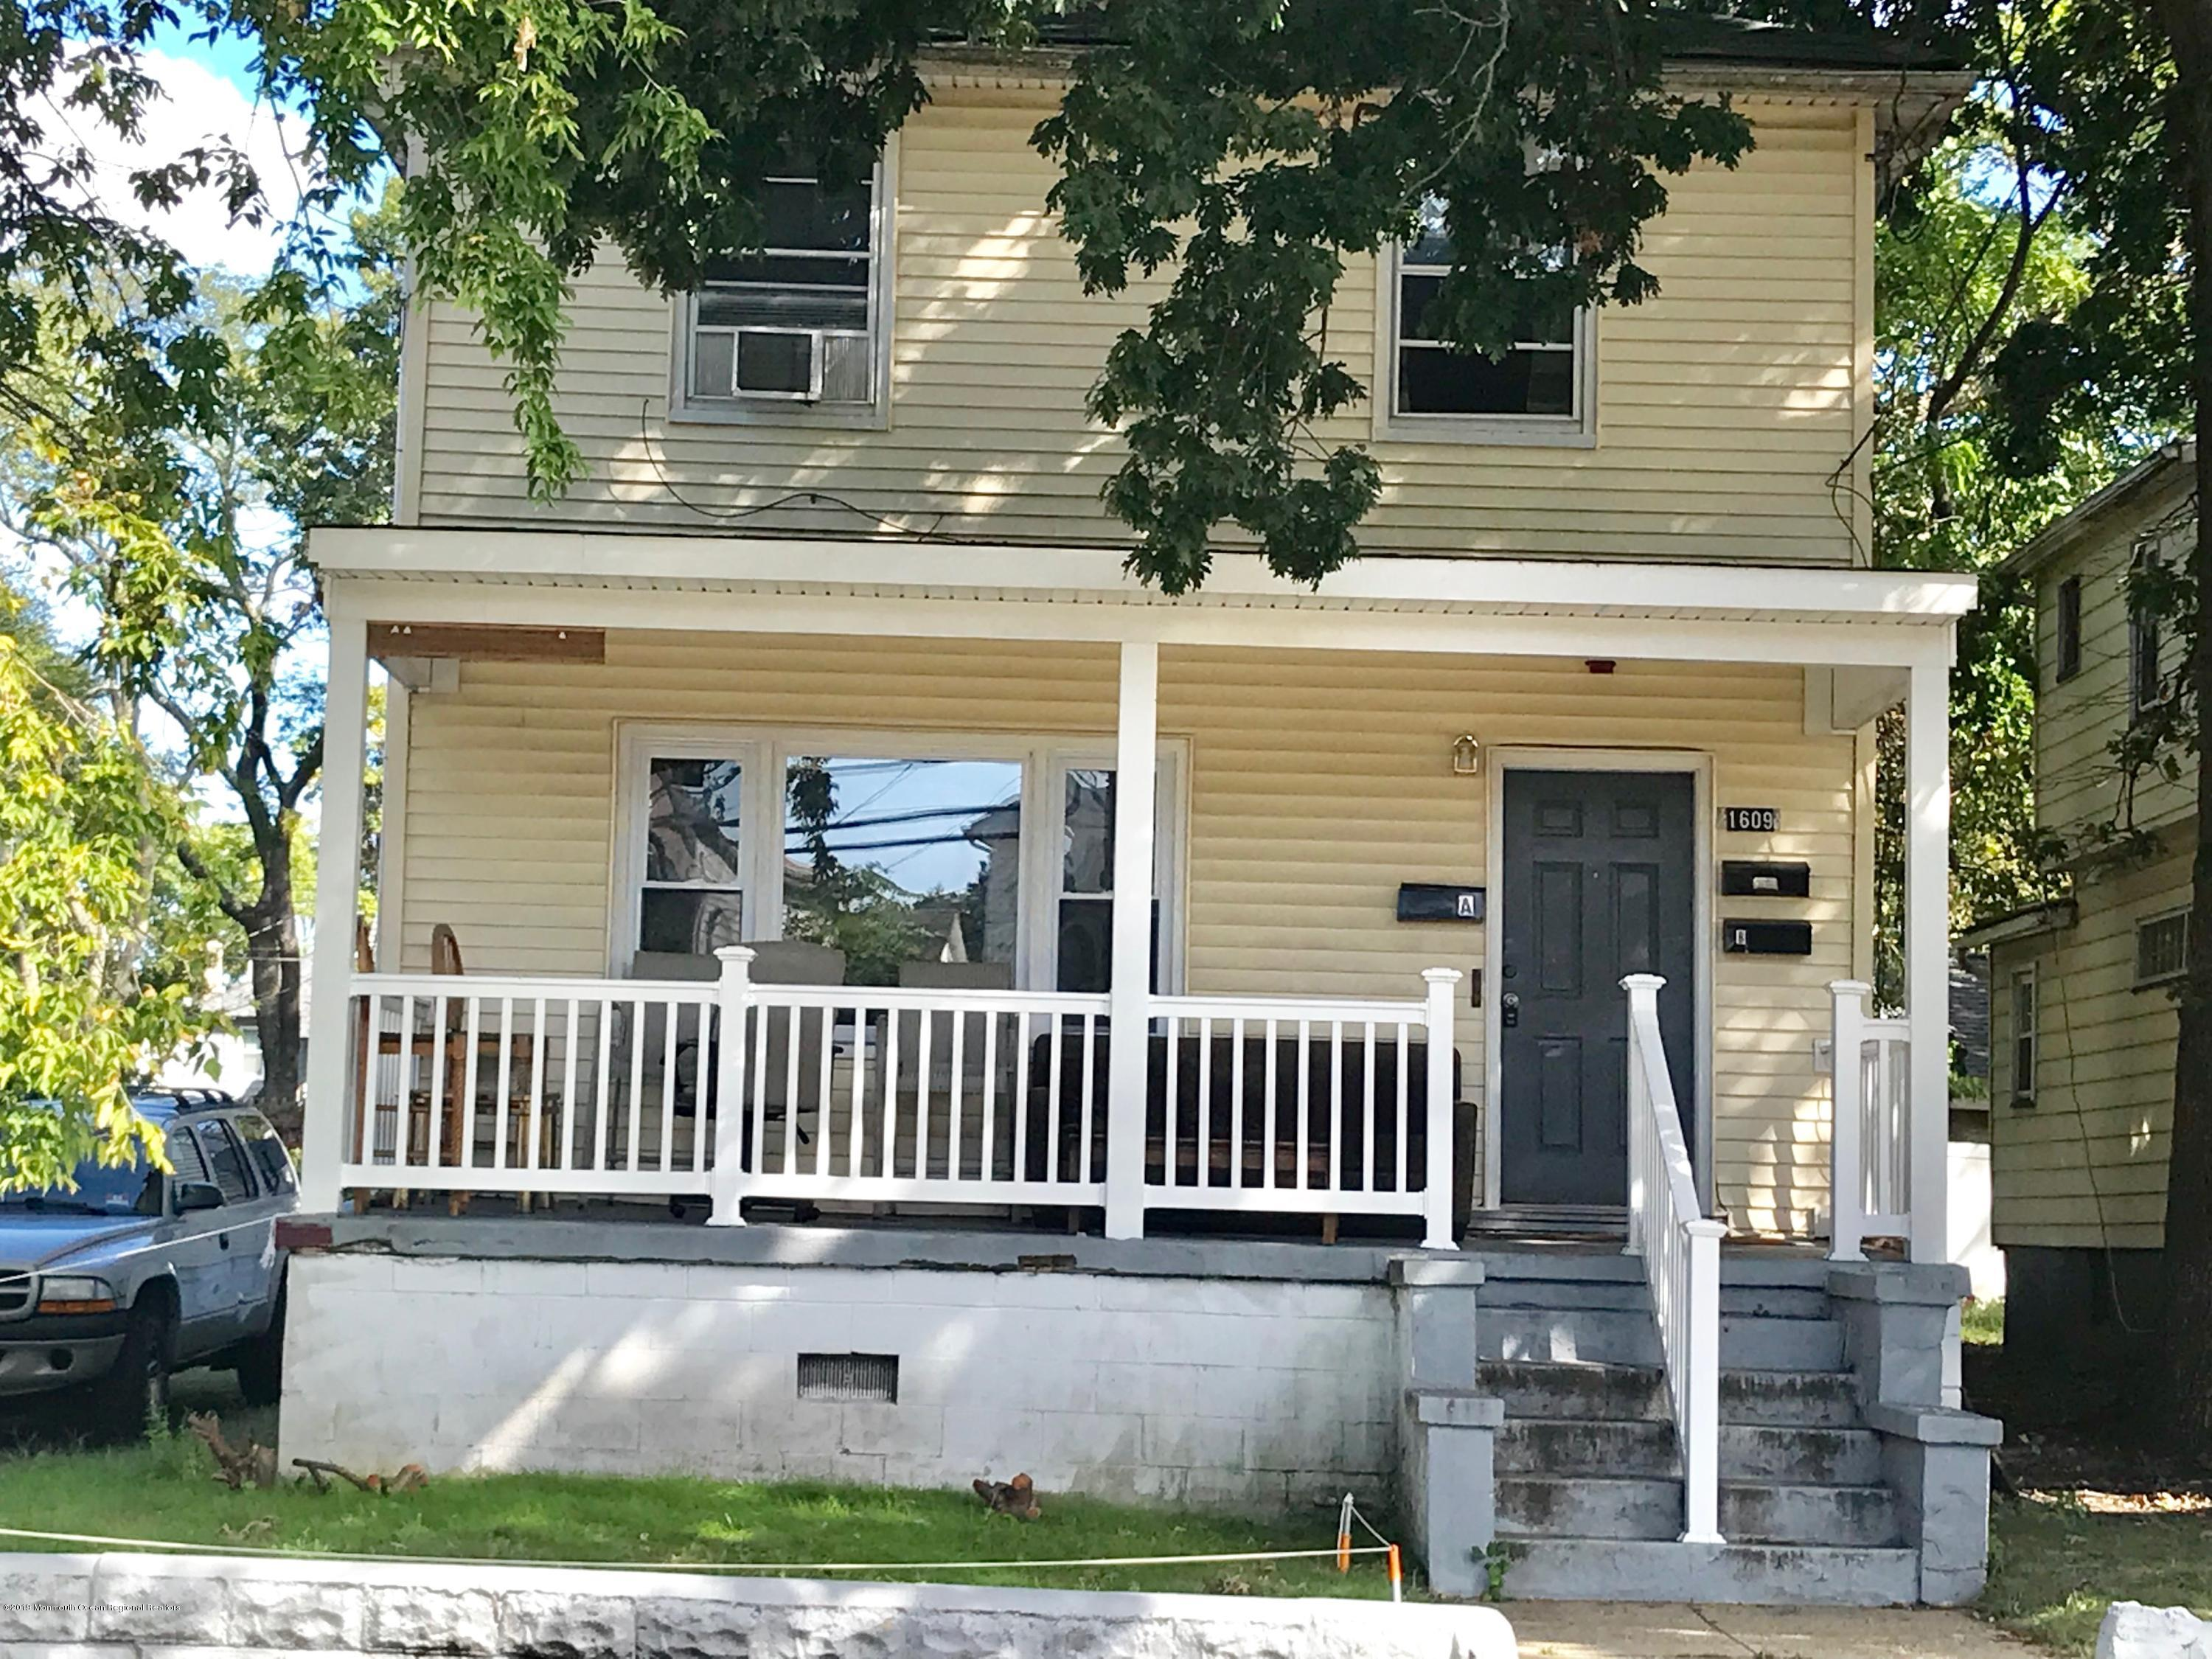 A MUST see, income producing 3 family home on the border of Asbury Park. 2 units newly renovated and one just vacated for an owner-occupied opportunity w/as little as 3.5% down. Or rent them all  for a good ROI. Off street parking for 3+ cars. Bonus, low taxes. State inspection good until 2023.